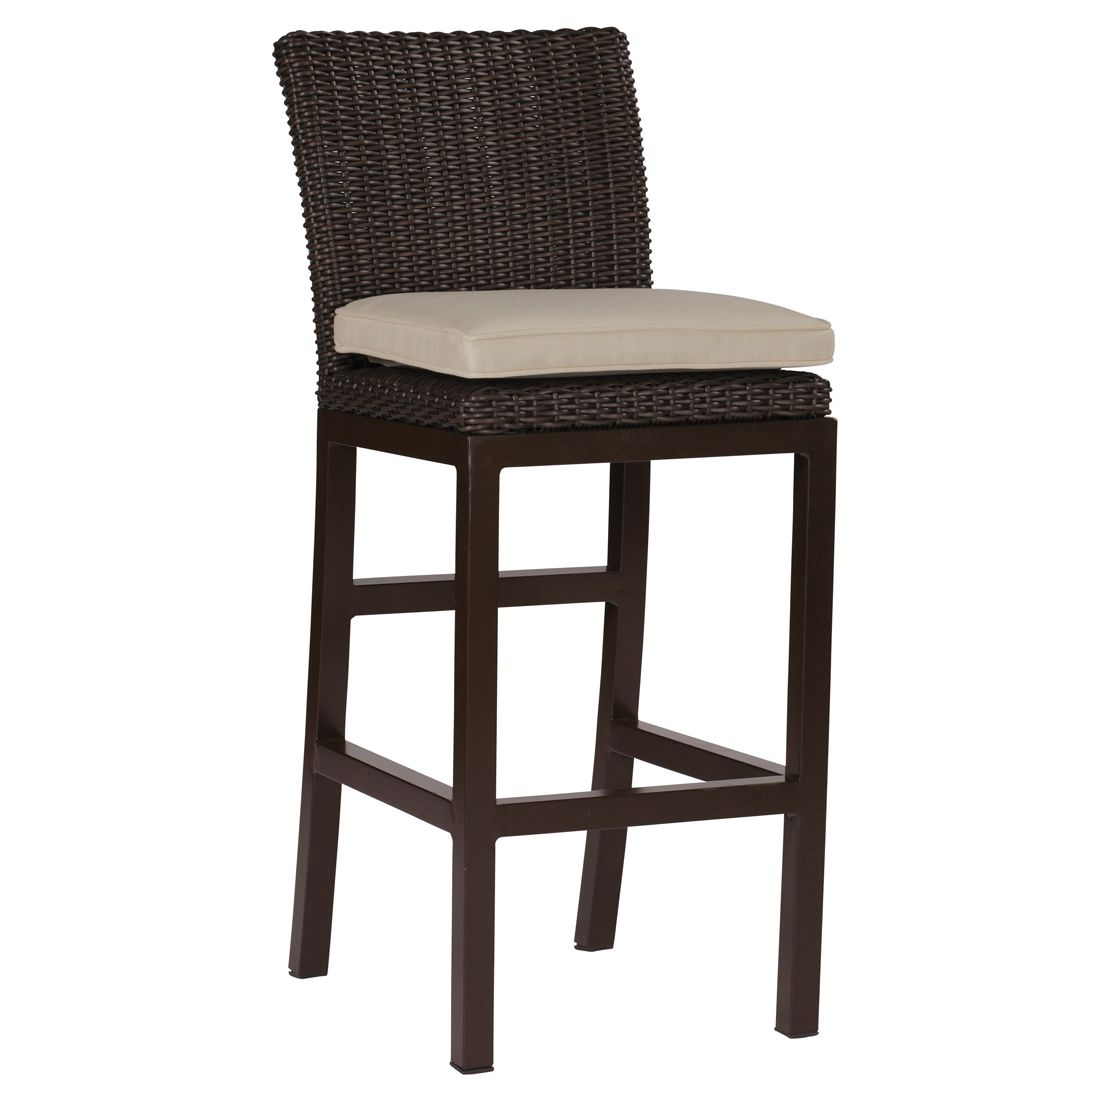 "rustic 30.5"" Bar Stool - Dimensions: W18.5 D24 H45"